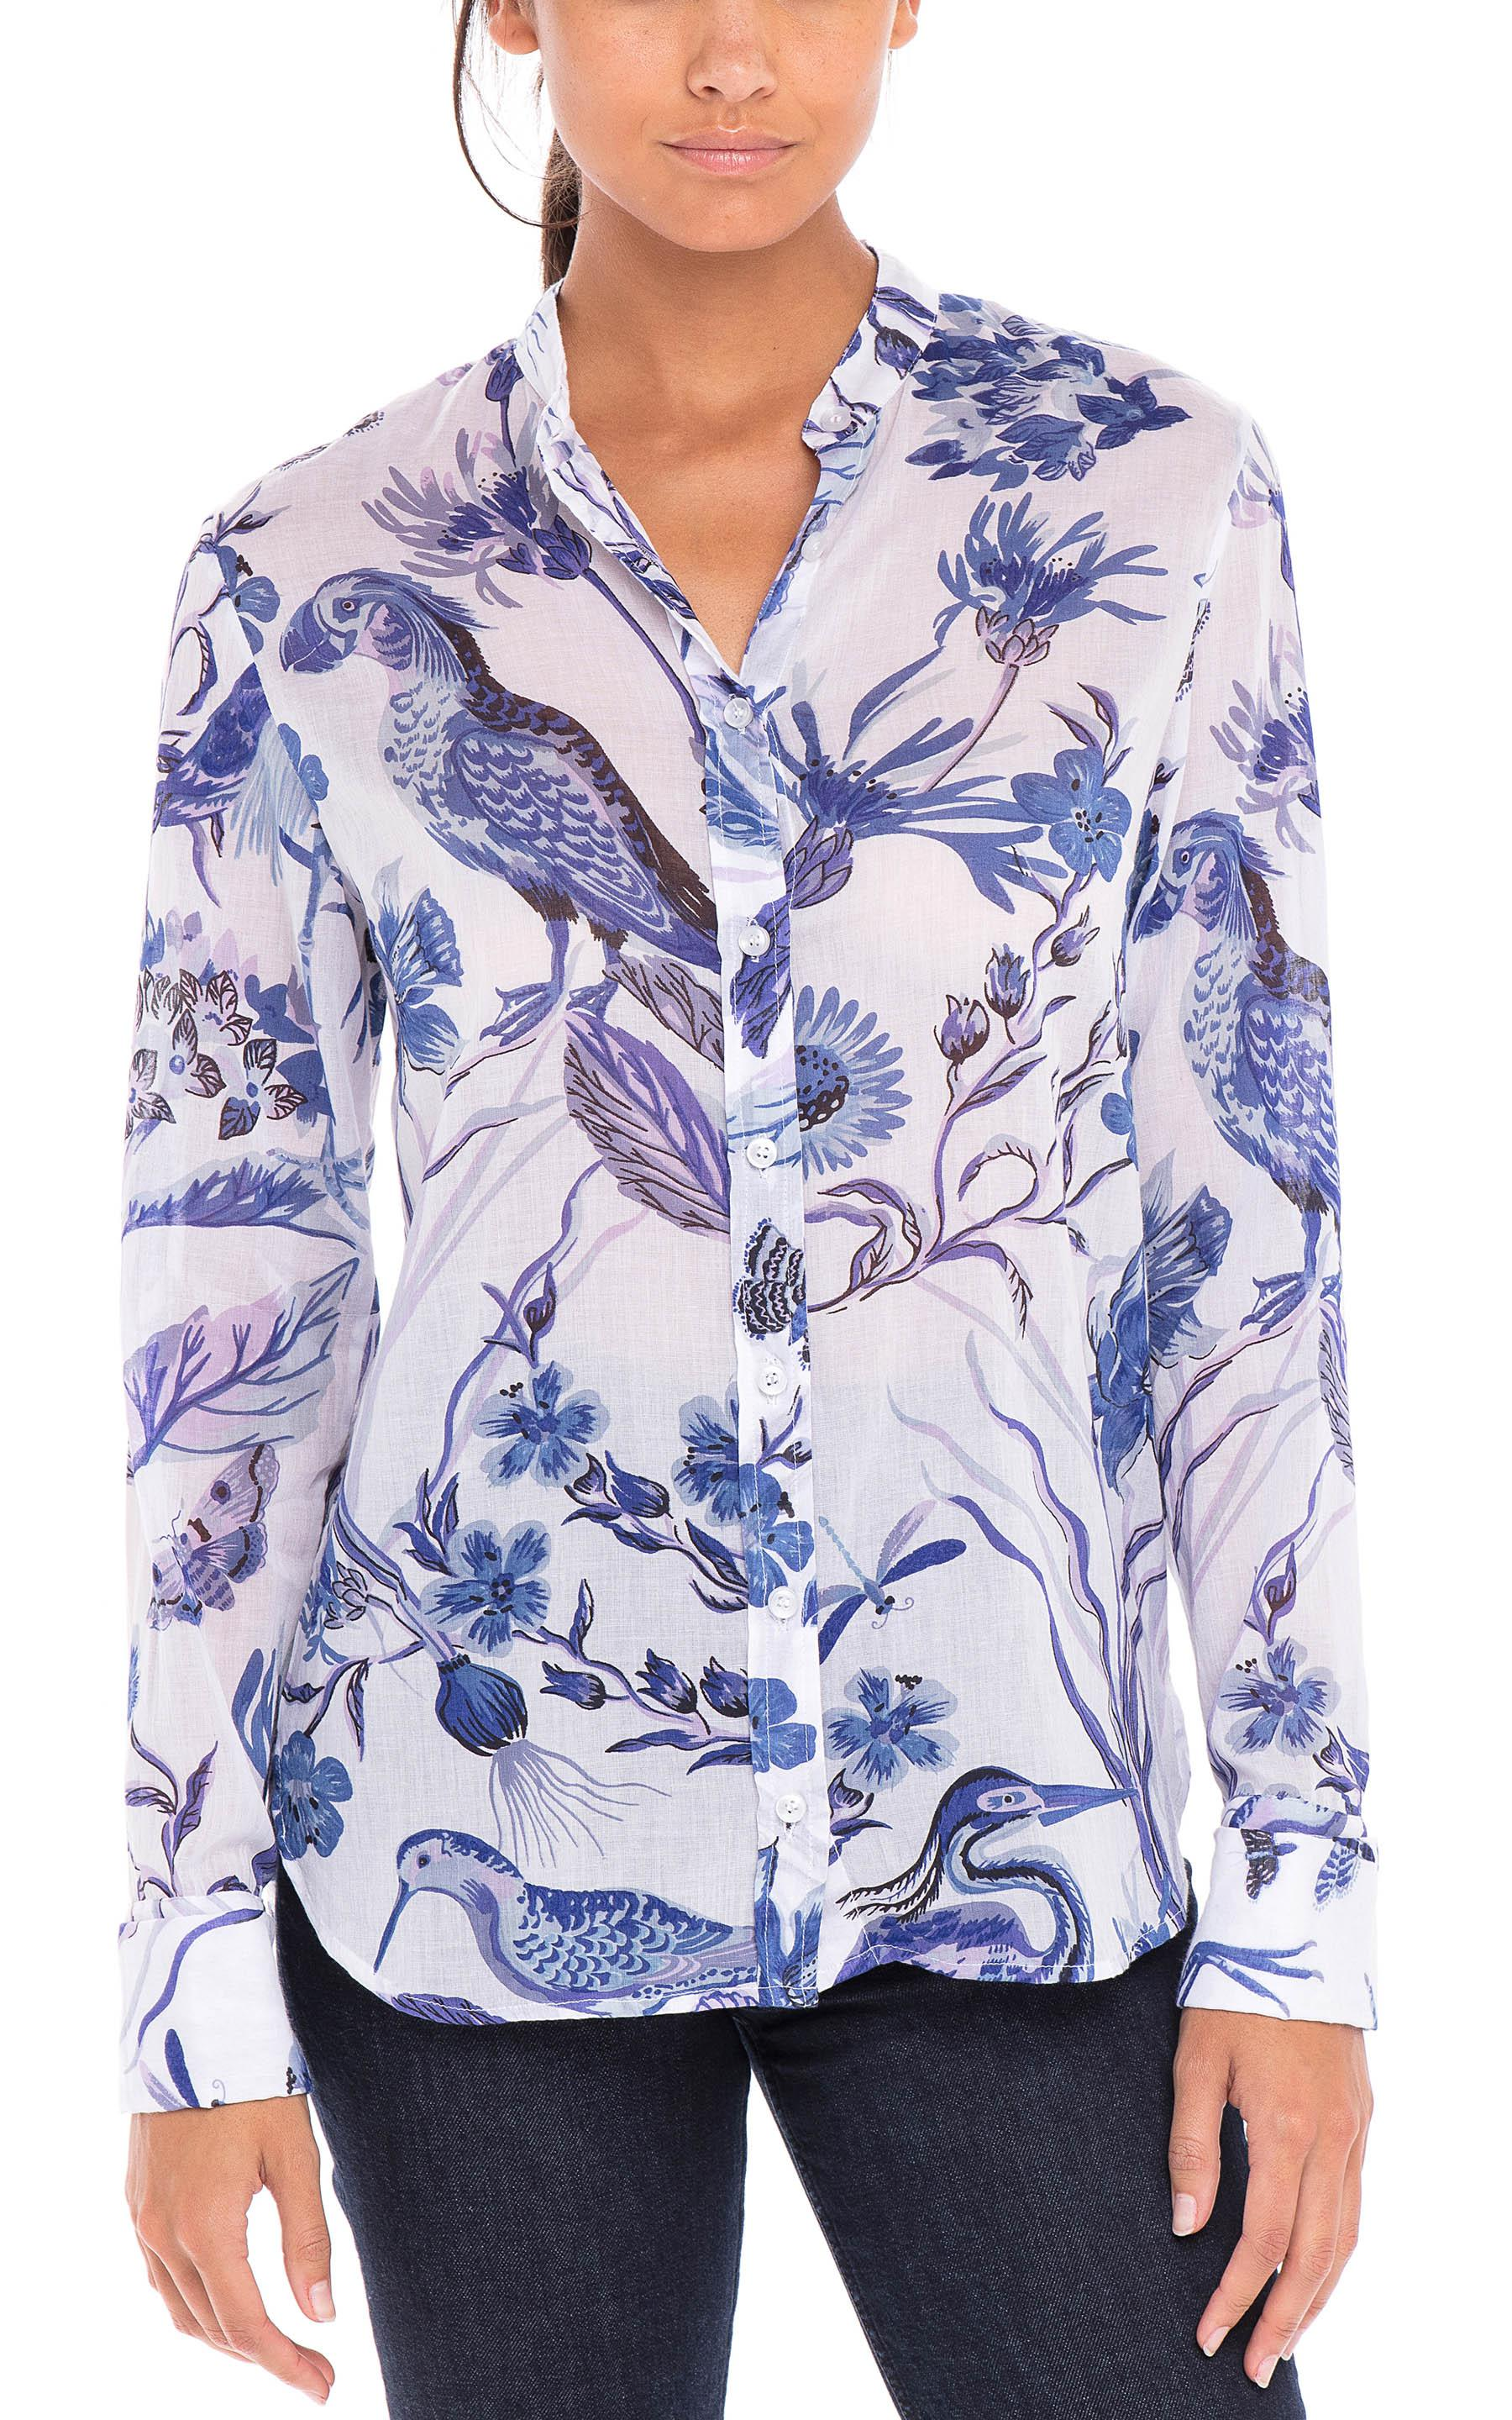 Alfreda Shirt Jubilee Blue - White